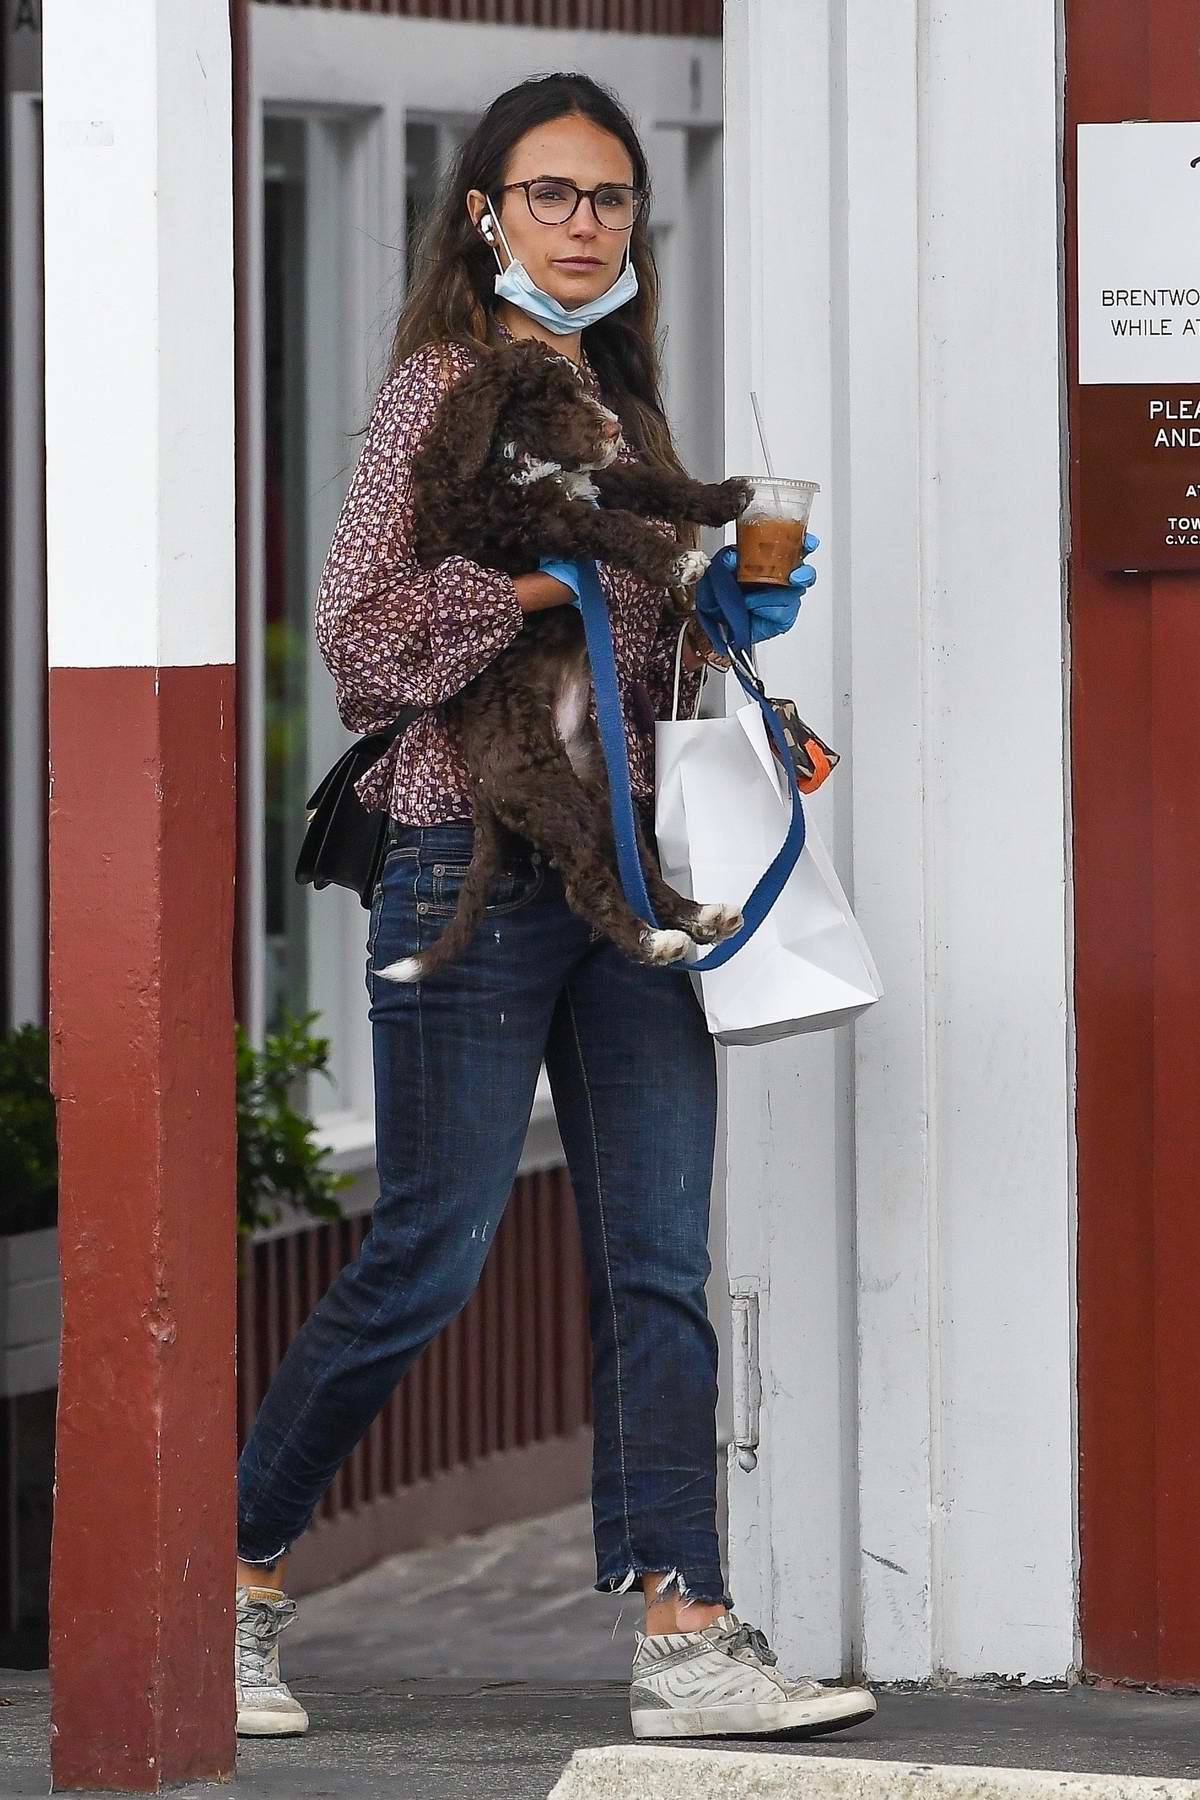 Jordana Brewster cradles her pup while out running errands in Brentwood, California